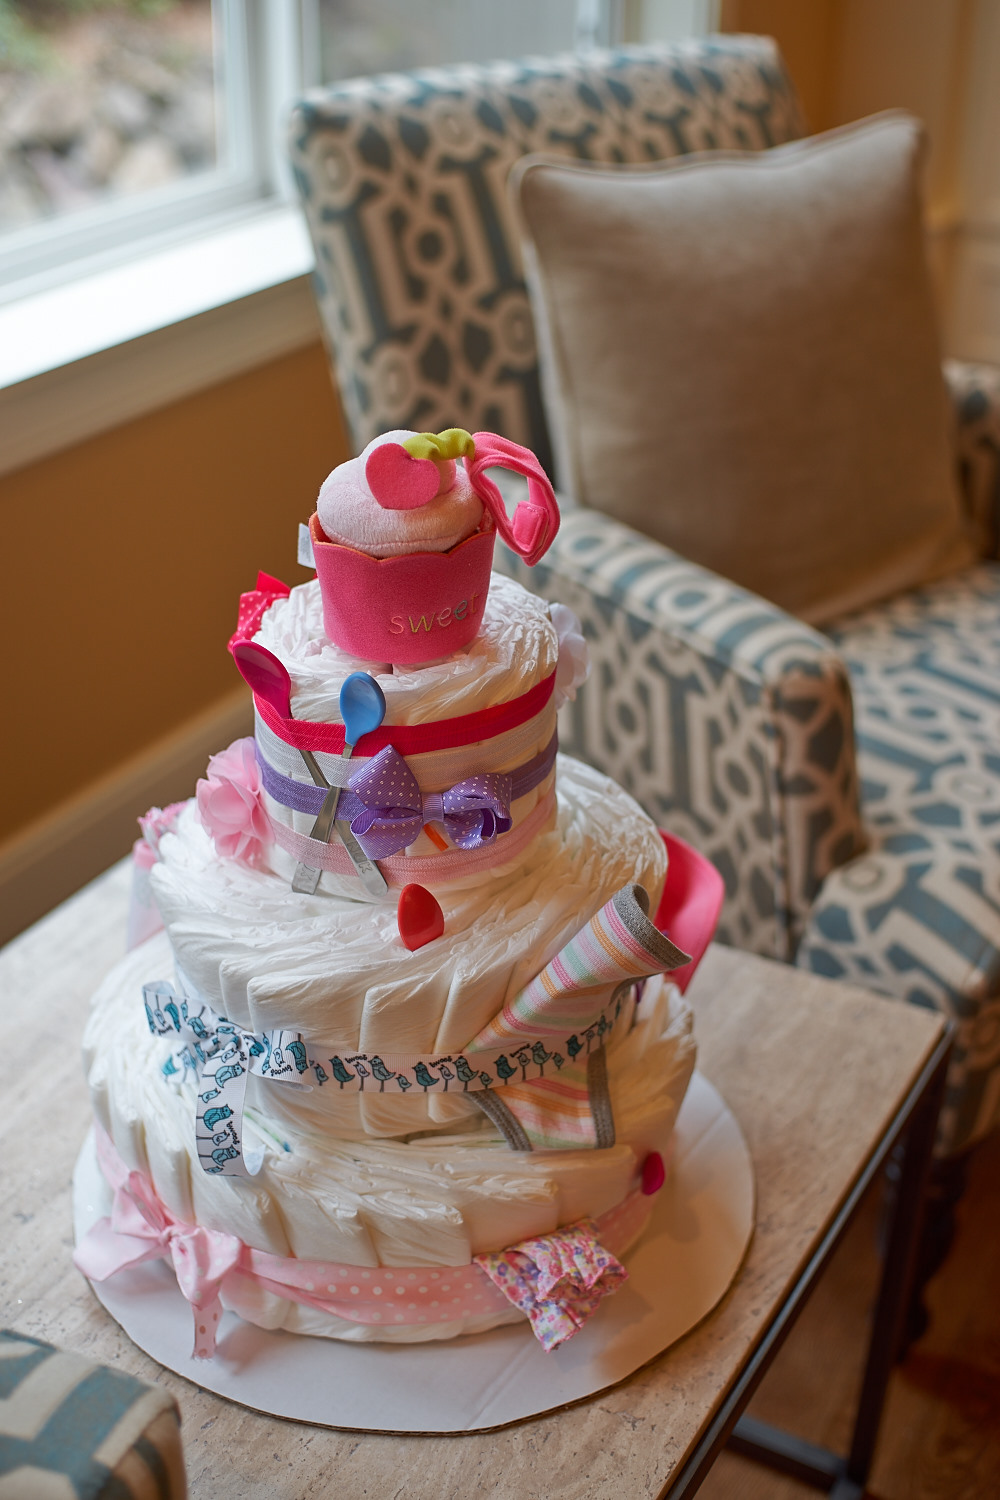 Look at that diaper cake! That's pretty creative :)